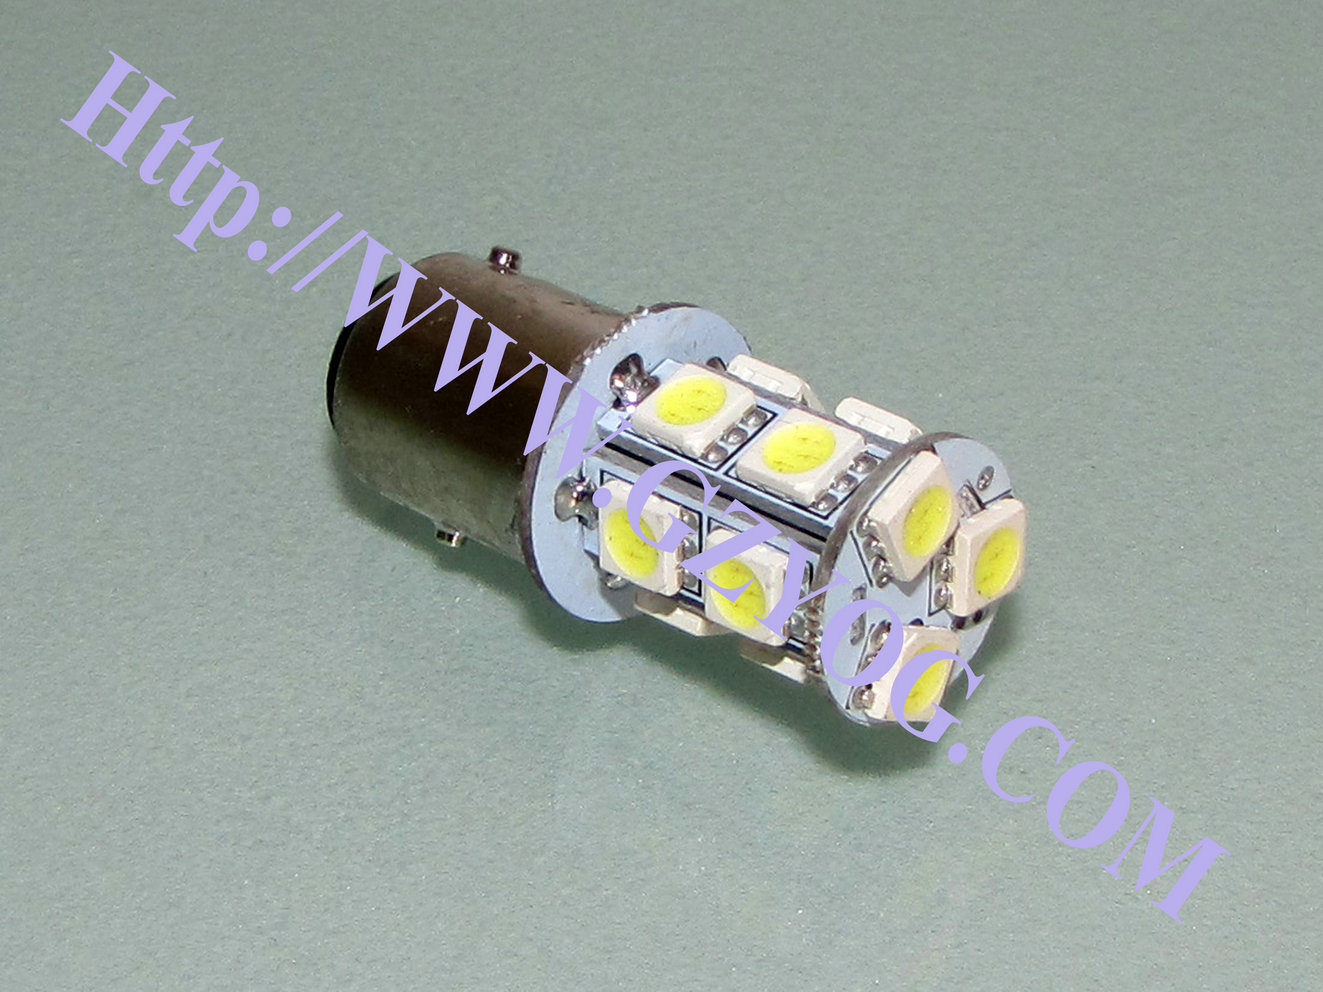 hi dimensions light white products lights watermark volt or yellow motorcycle led beam with headlights conversion lo colour options headlight